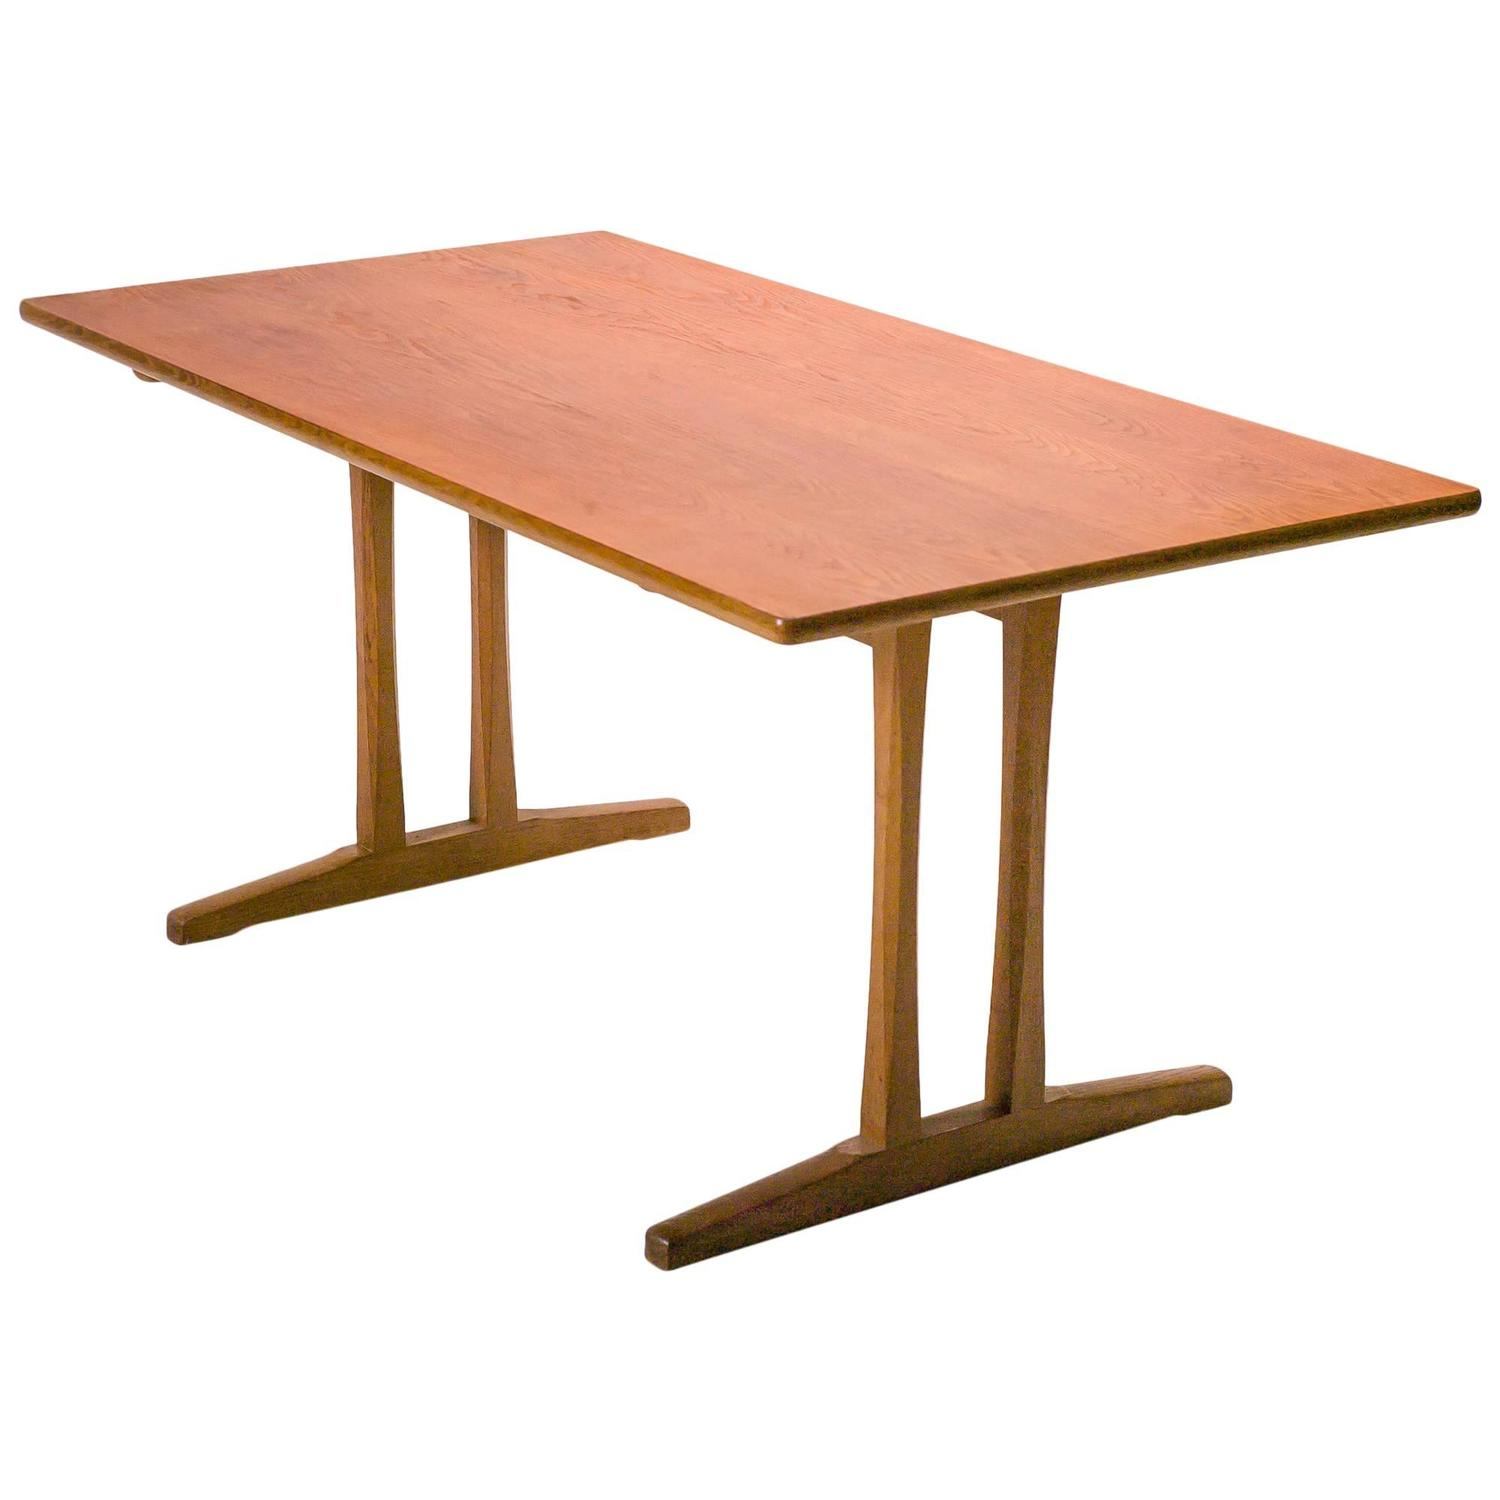 Shaker Table C18 by B¸rge Mogensen For Sale at 1stdibs